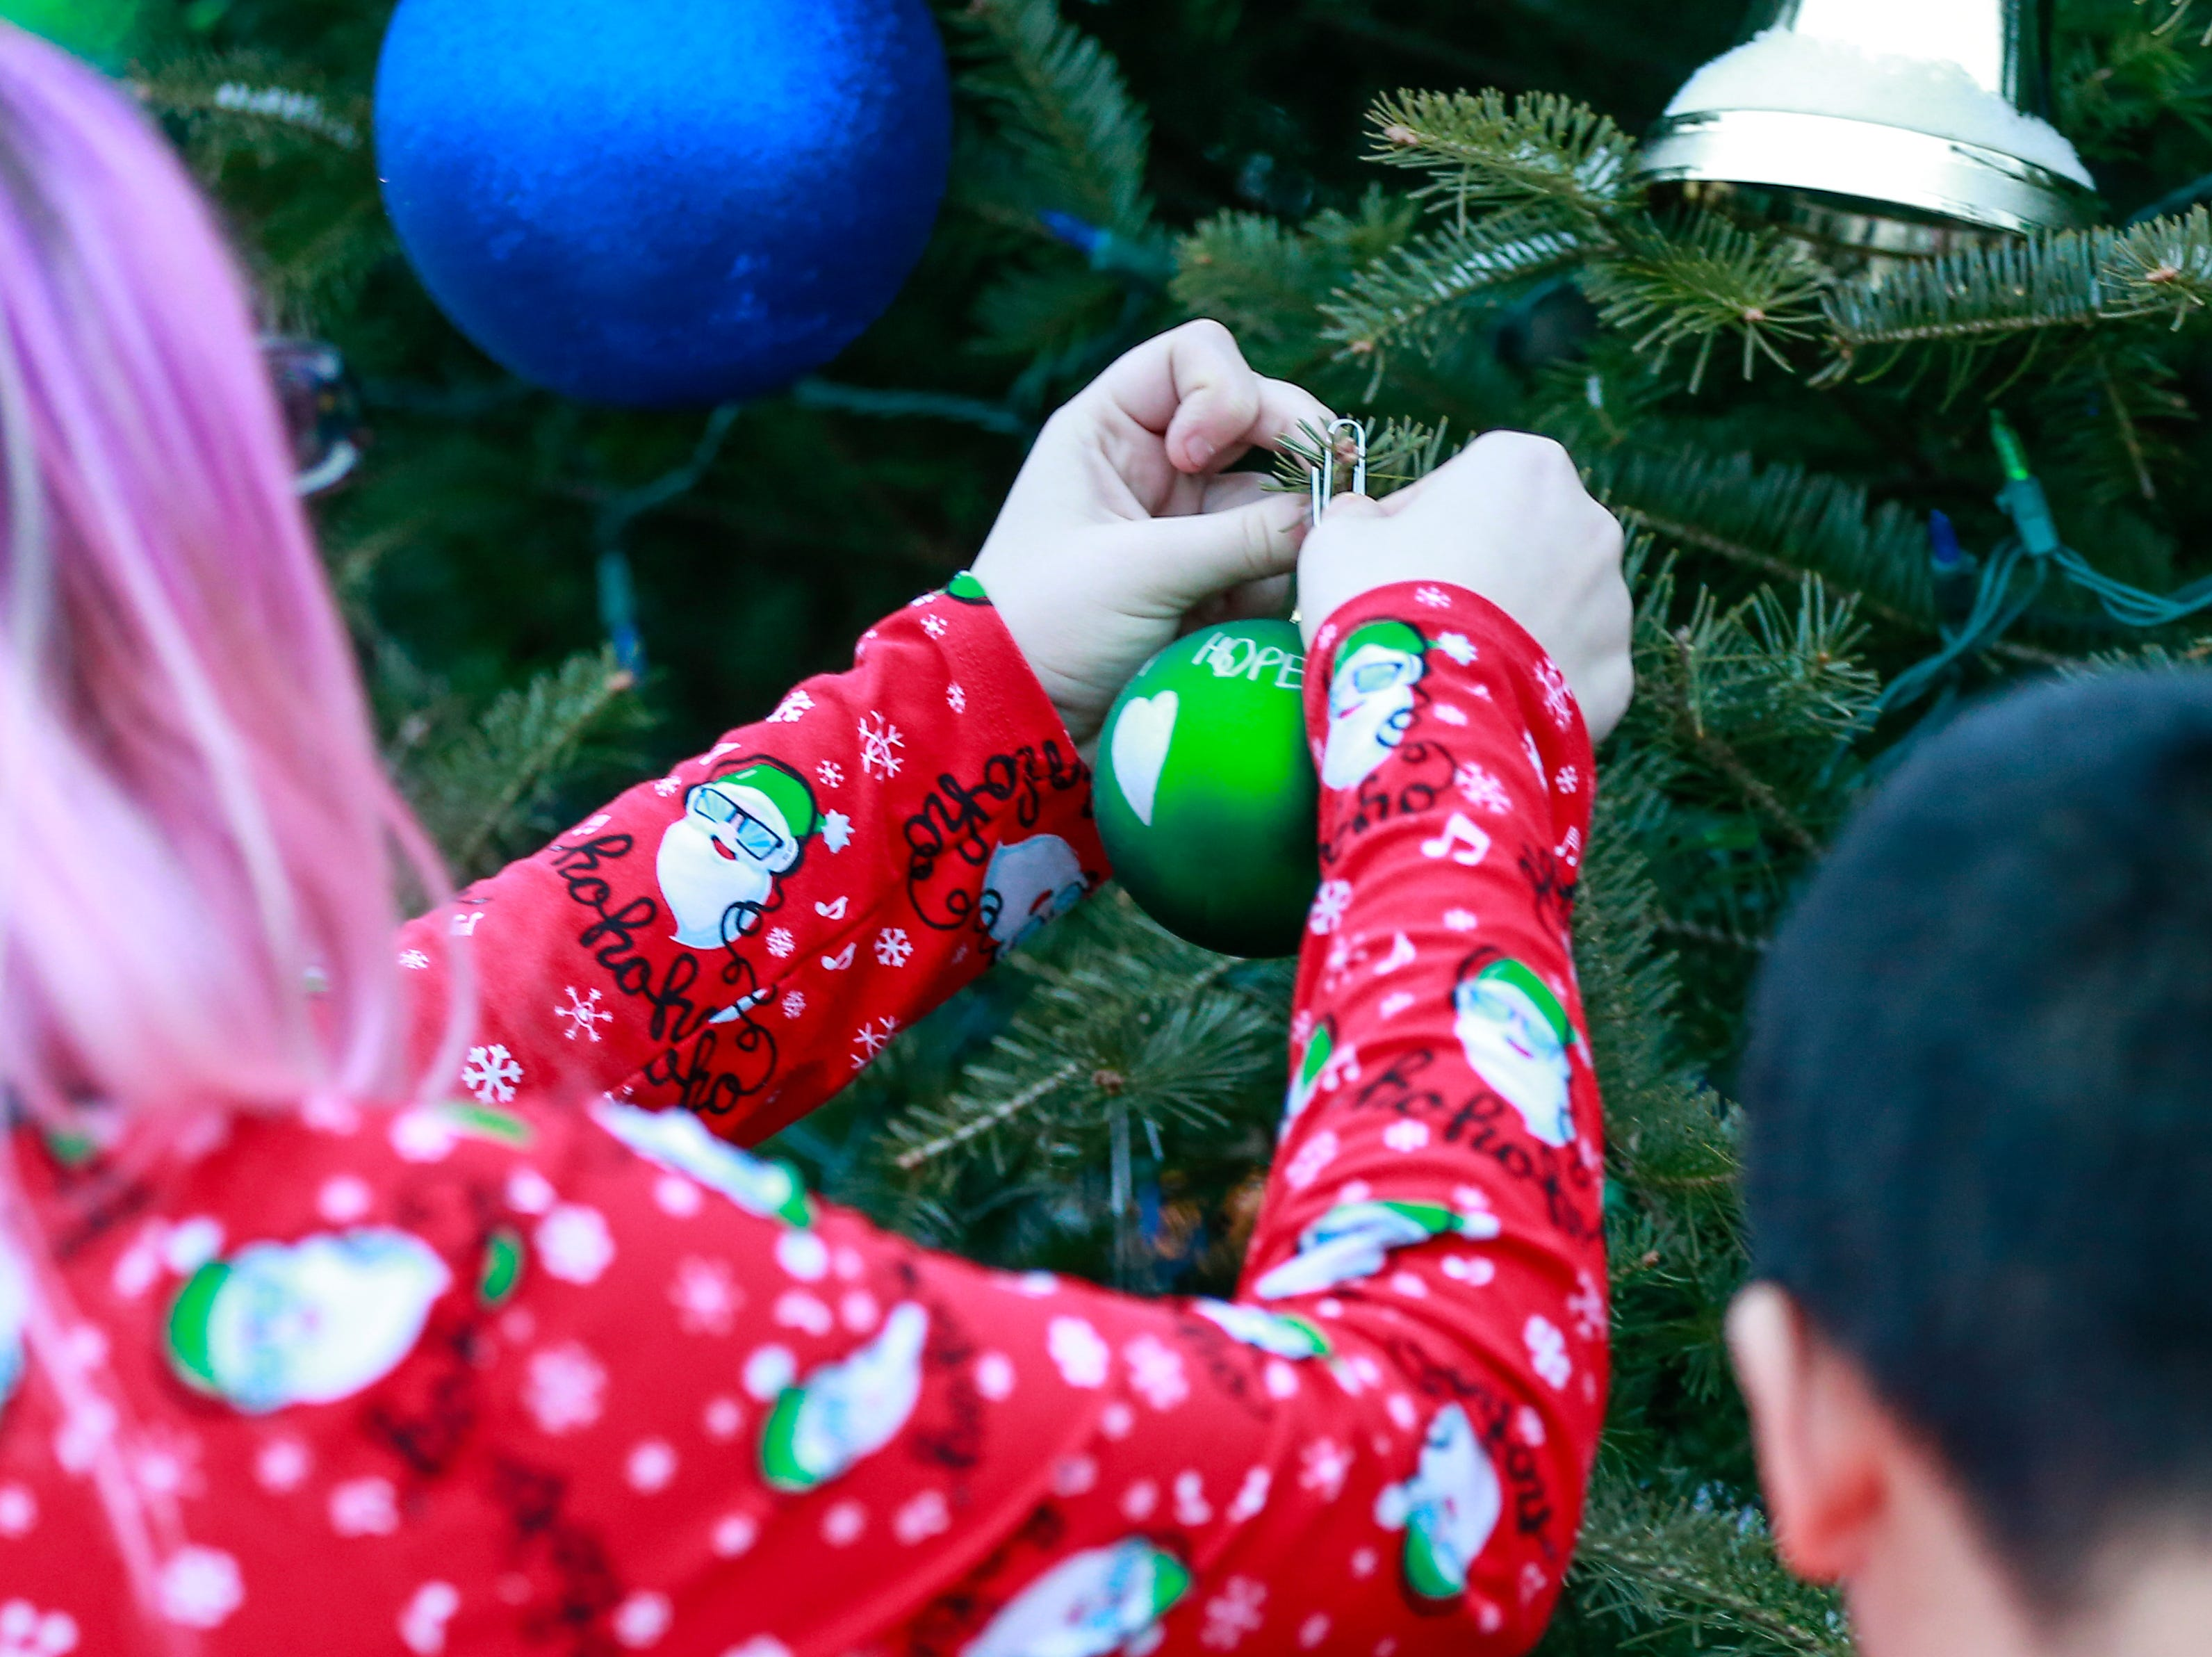 Students hang Christmas ornaments on the Tree of Hope for Jayme Closs Wednesday, Dec. 12, 2018, outside of Riverview Middle School in Barron, Wisc. T'xer Zhon Kha/USA TODAY NETWORK-Wisconsin